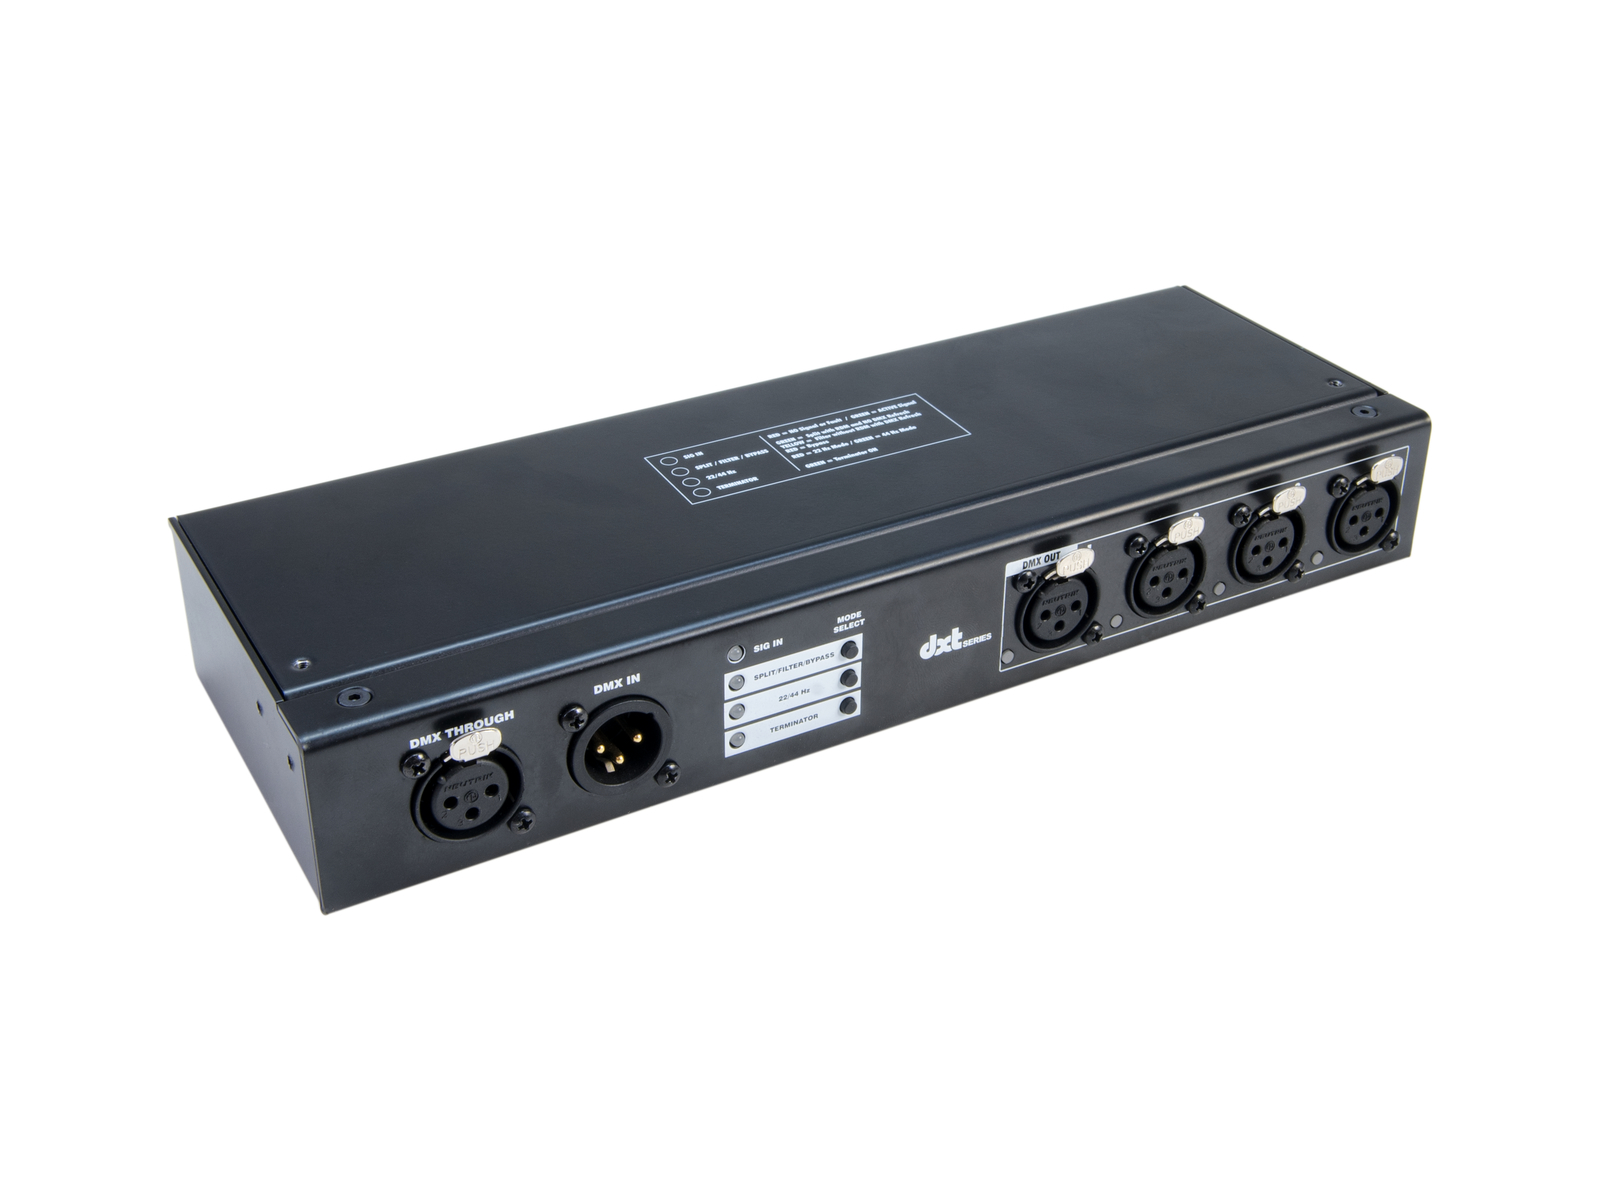 EUROLITE DXT-SP 1in/4out PRO DMX, RDM Splitter